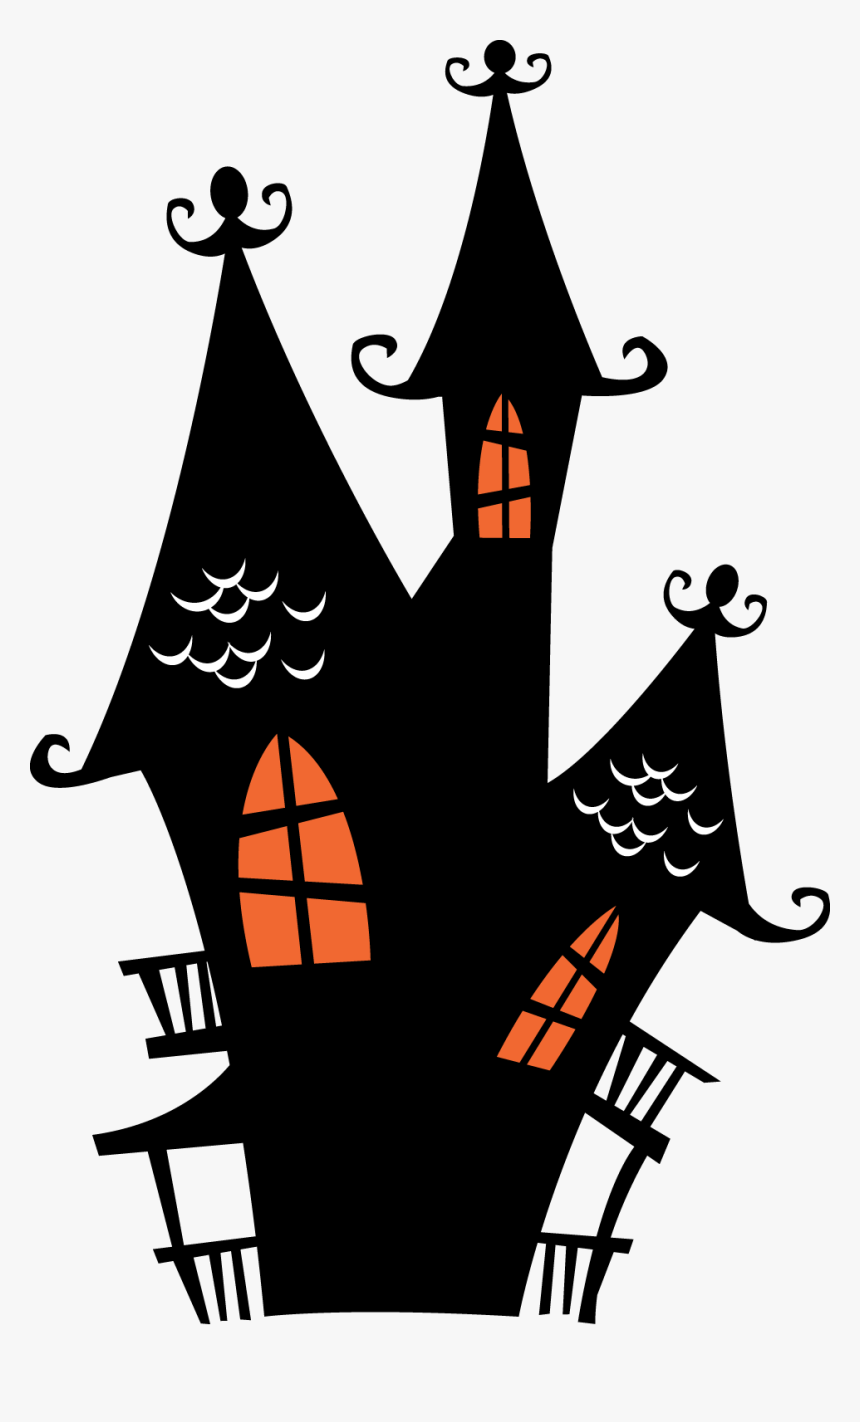 Halloween Film Series Haunted House Party Clip Art - Transparent Background Halloween Clip Art, HD Png Download, Free Download